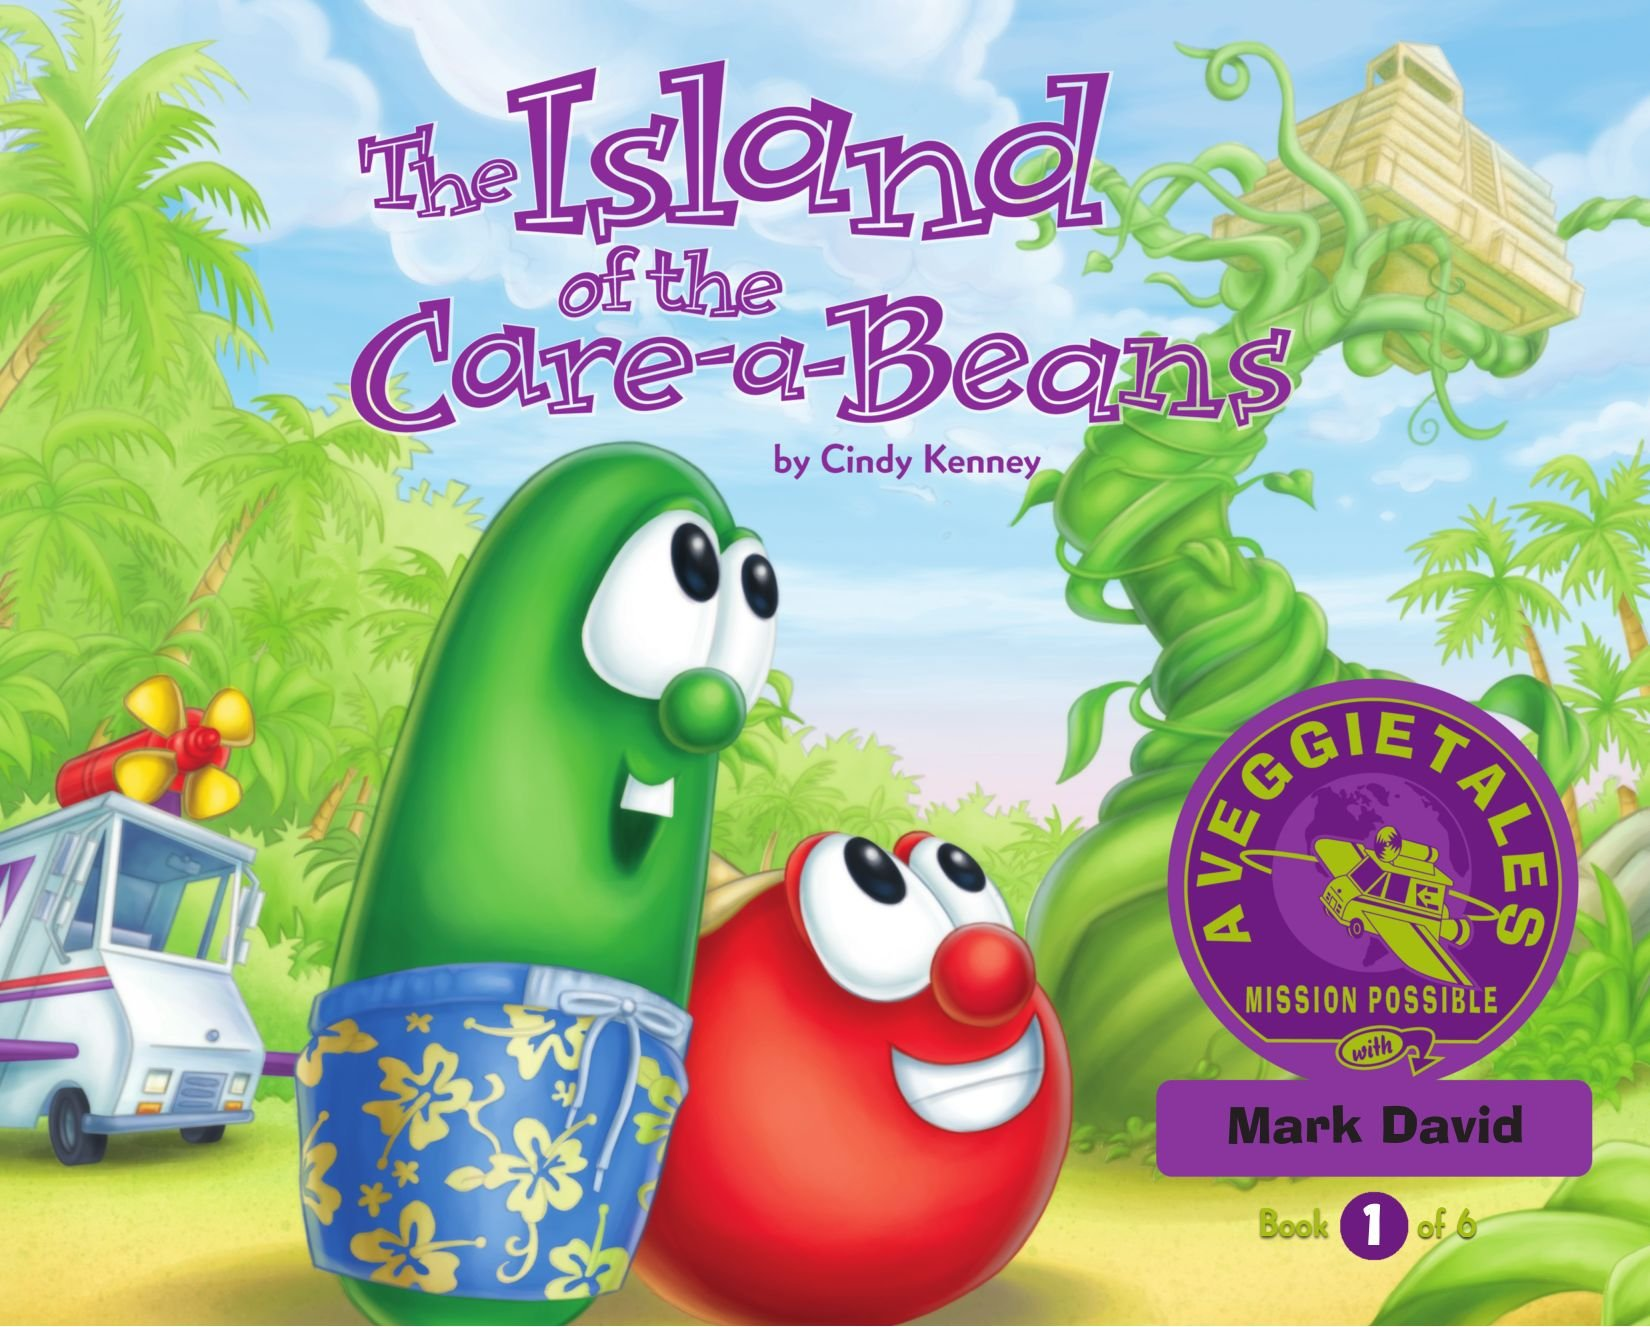 Download The Island of the Care-a-Beans - VeggieTales Mission Possible Adventure Series #1: Personalized for Mark David (Boy) PDF